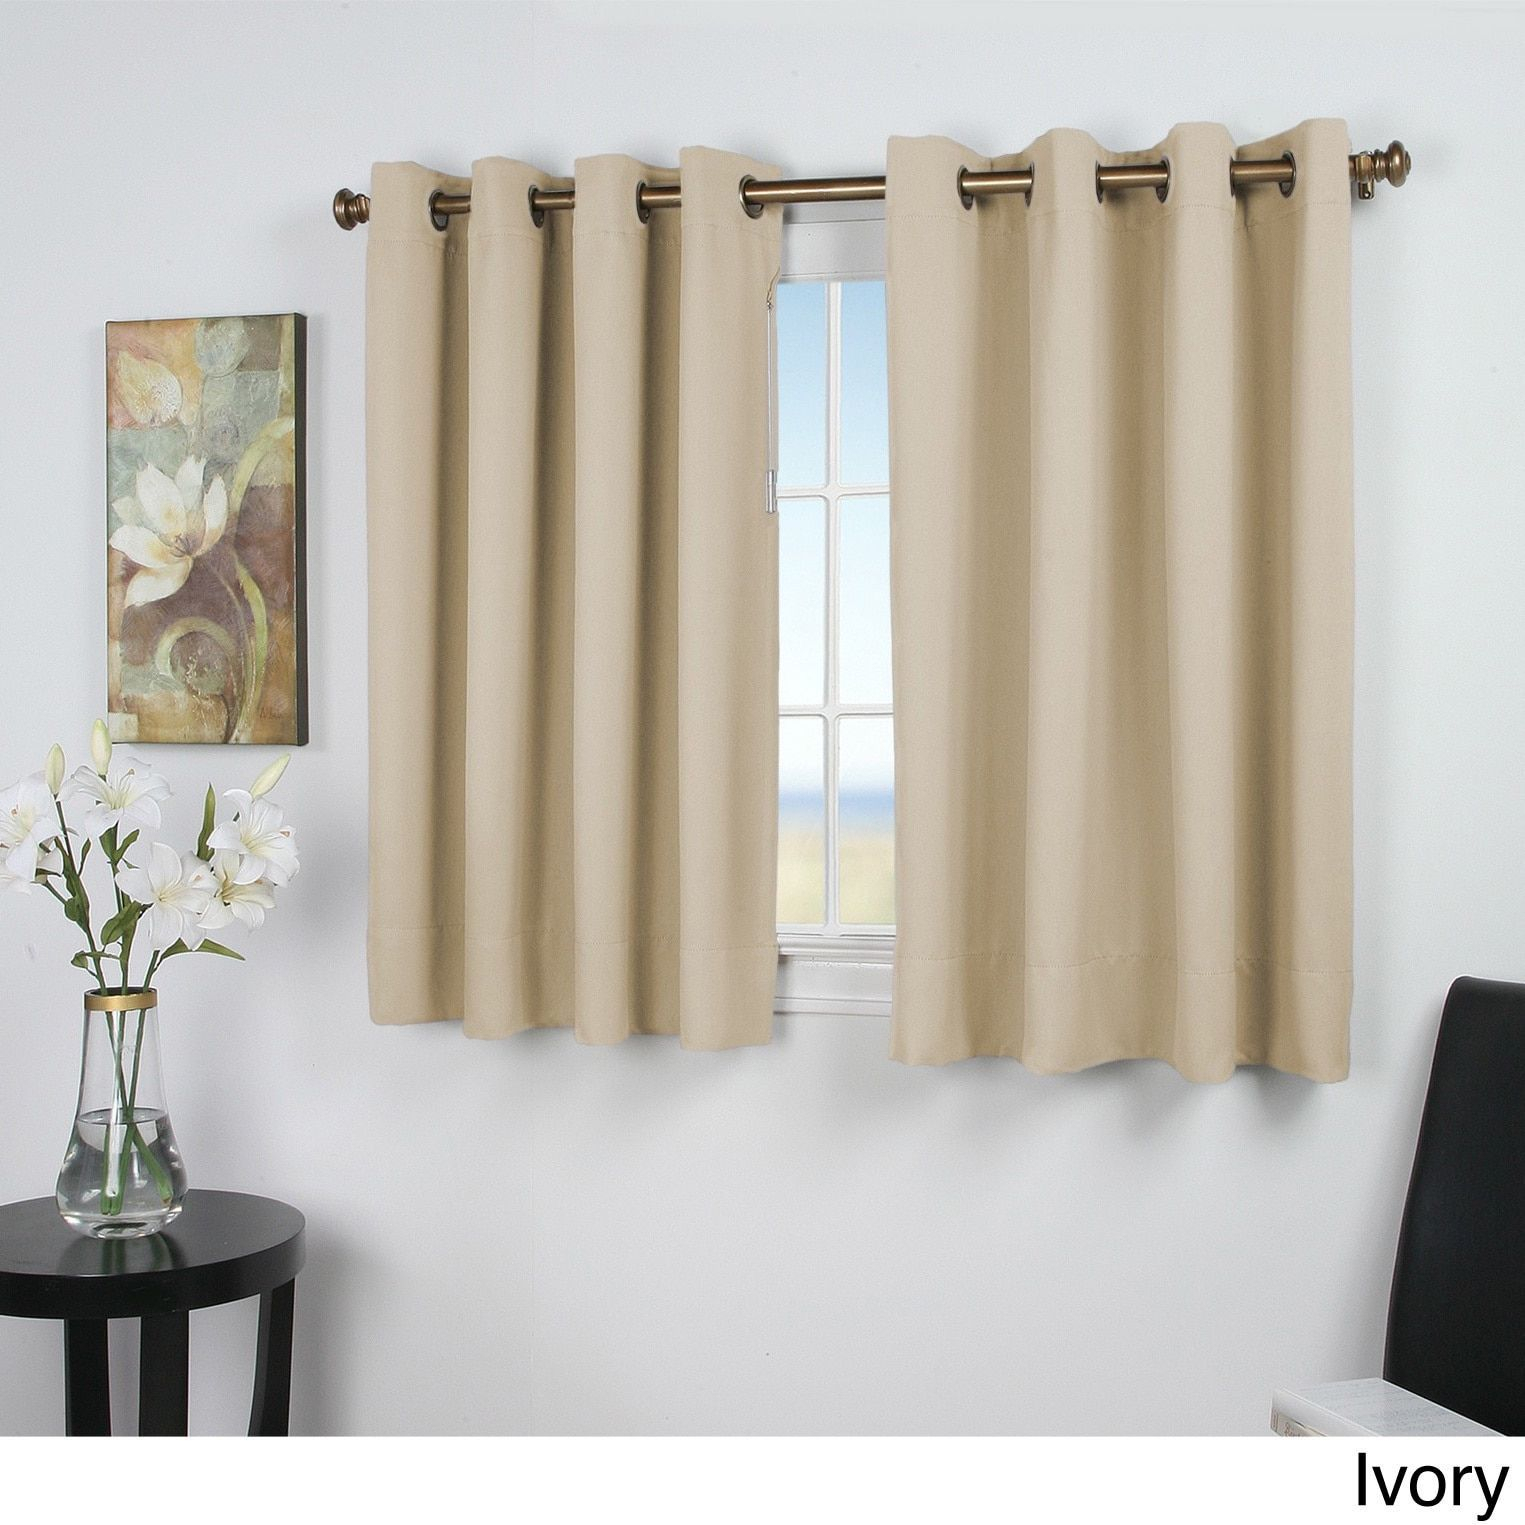 Ricardo Ultimate Blackout 54-Inch Short Length Grommet Panel intended for Tacoma Double-Blackout Grommet Curtain Panels (Image 18 of 30)